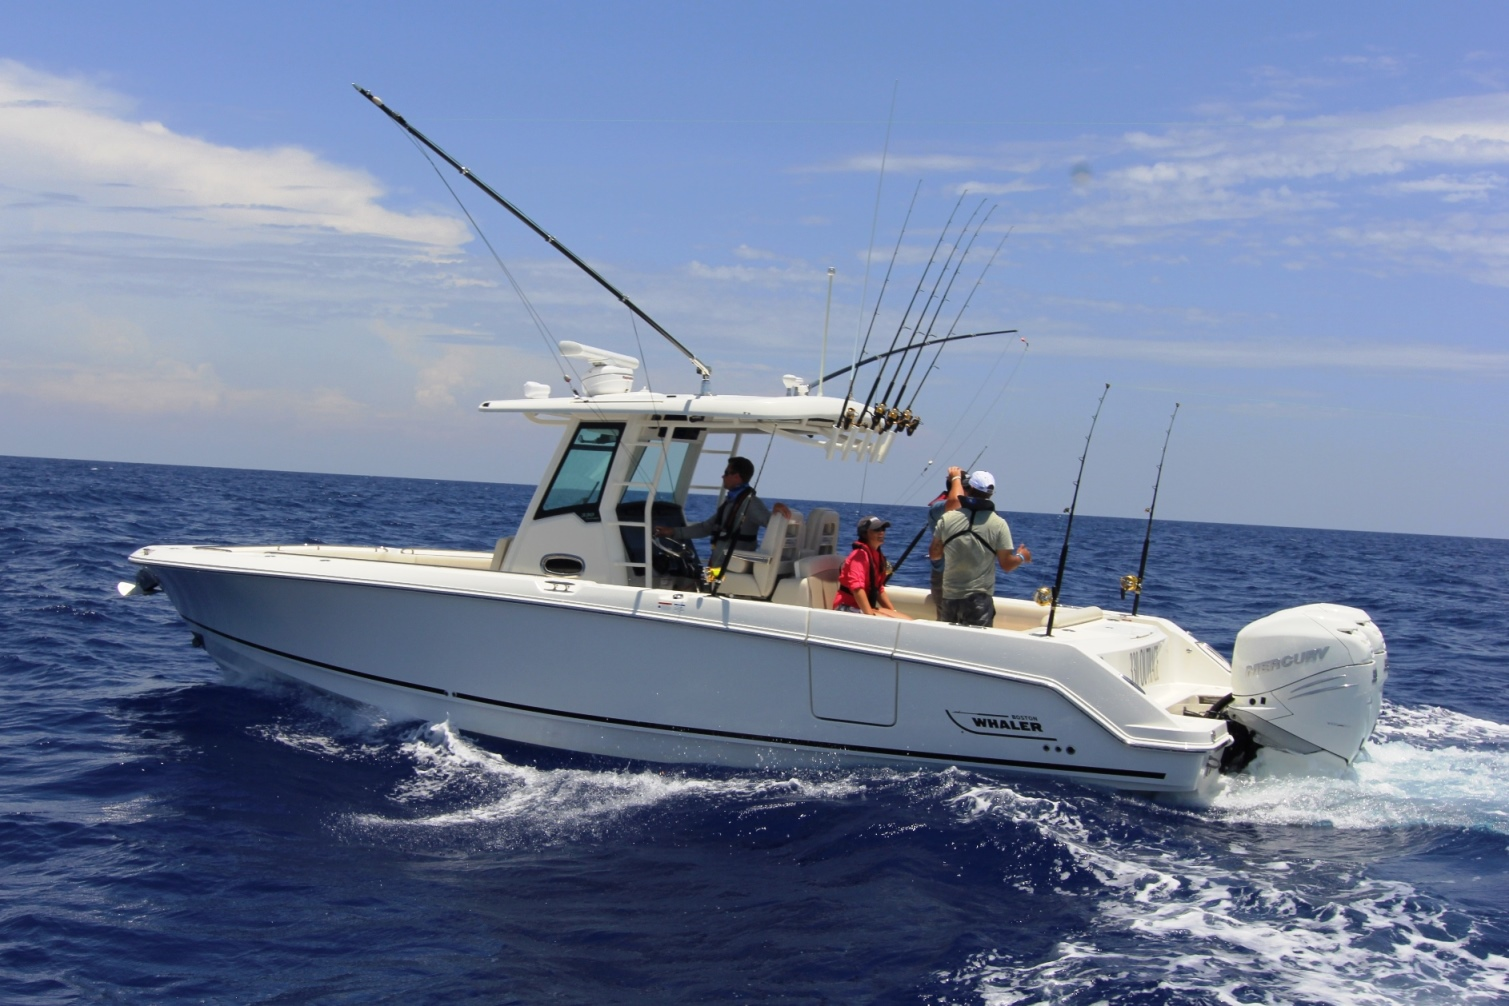 Boston Whaler 330 Outrage Sister ship